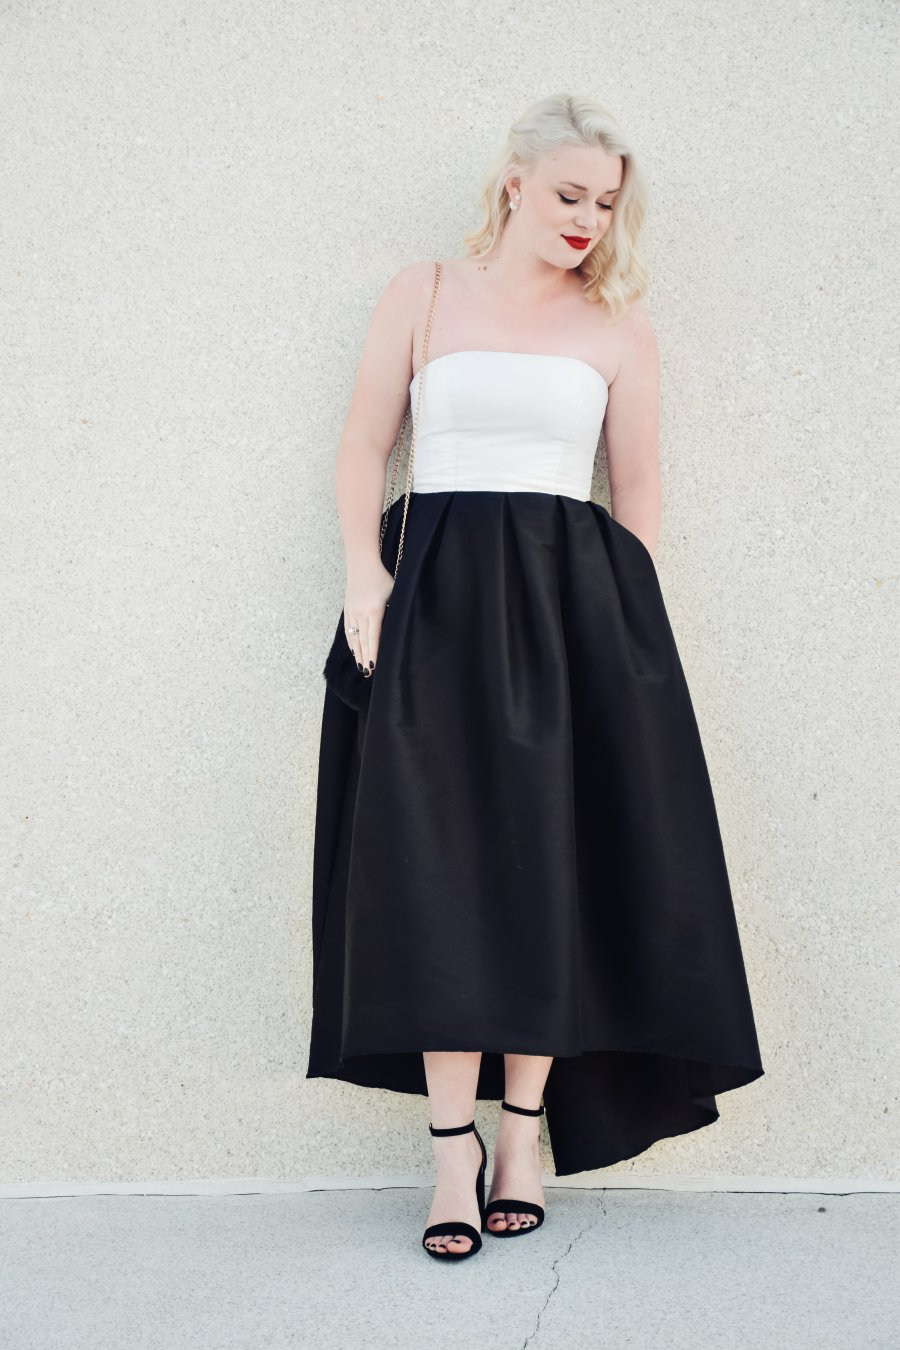 black-and-white-dress-7-of-23